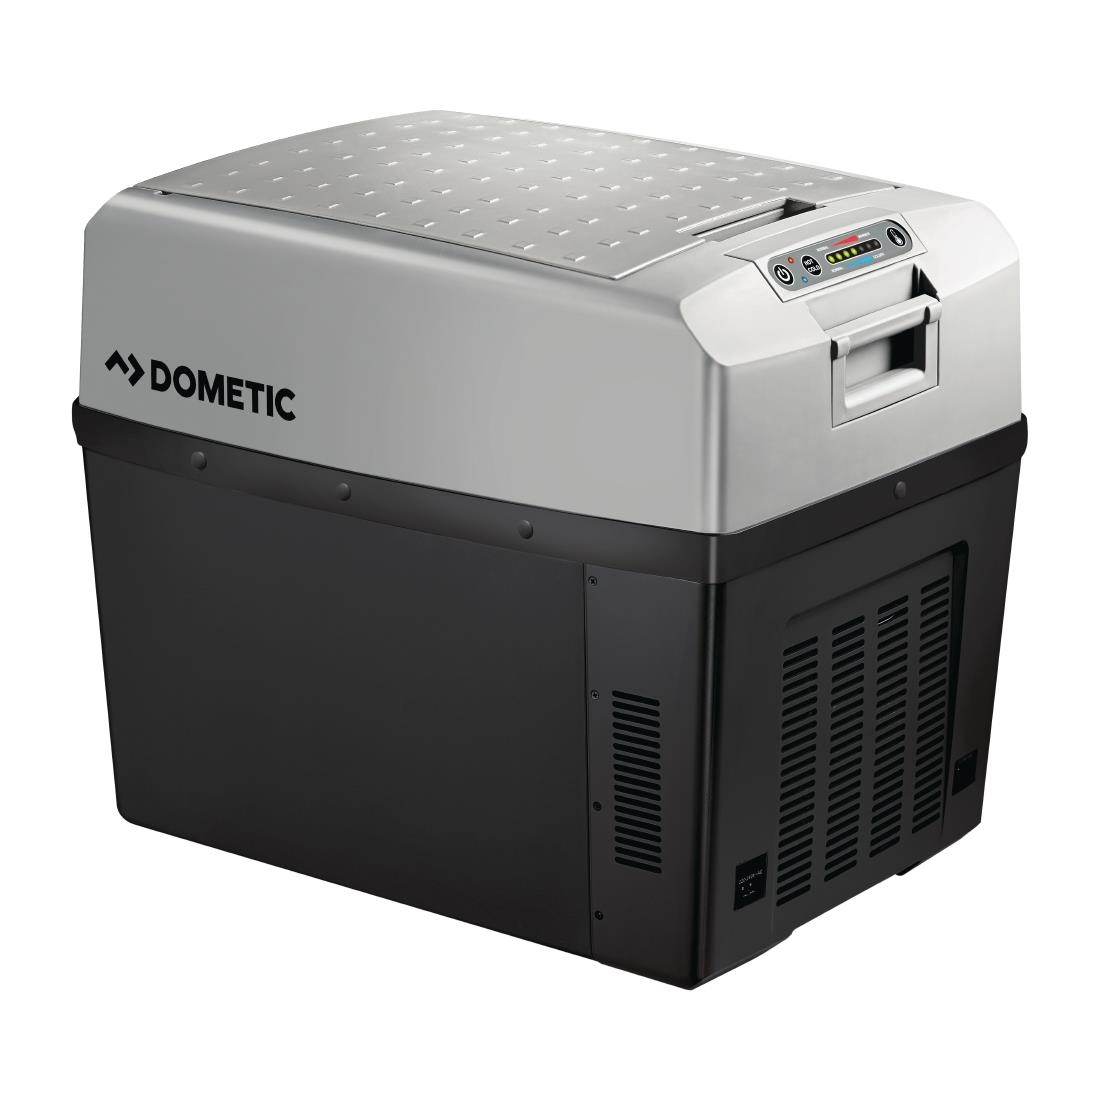 Image of Dometic TropiCool Cool Box and Warmer 33Ltr